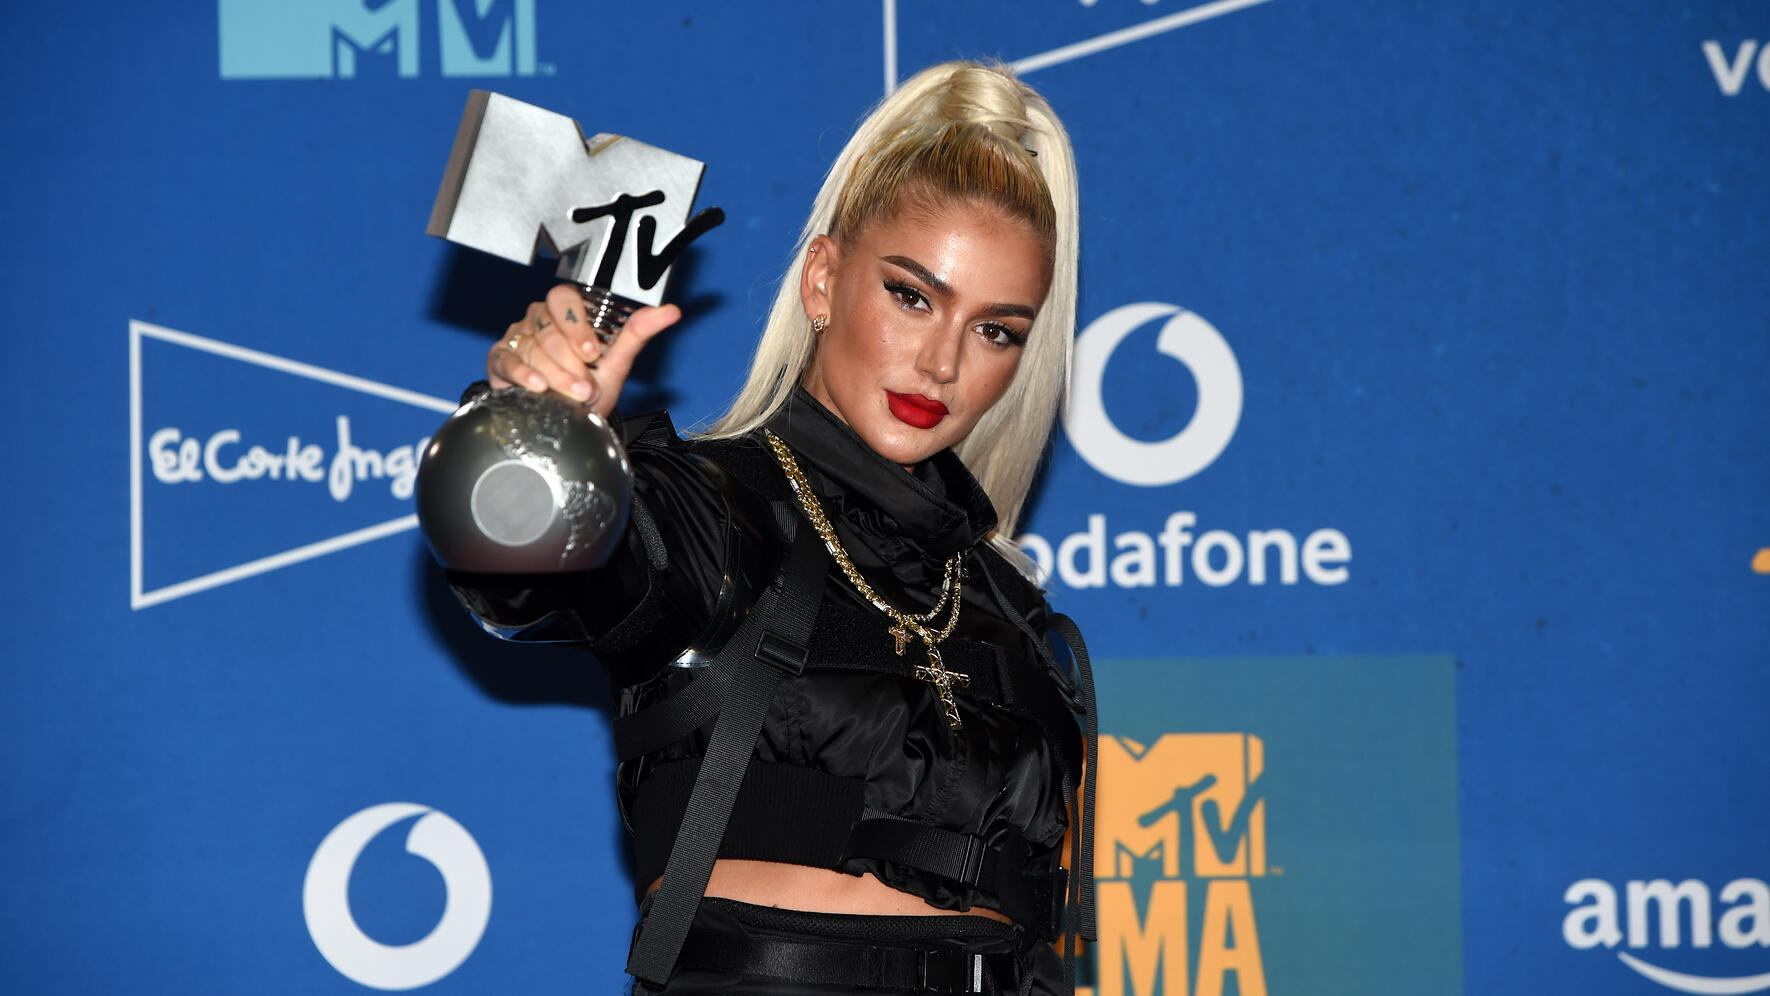 Rapperin Loredana MTV European Music Award 2019